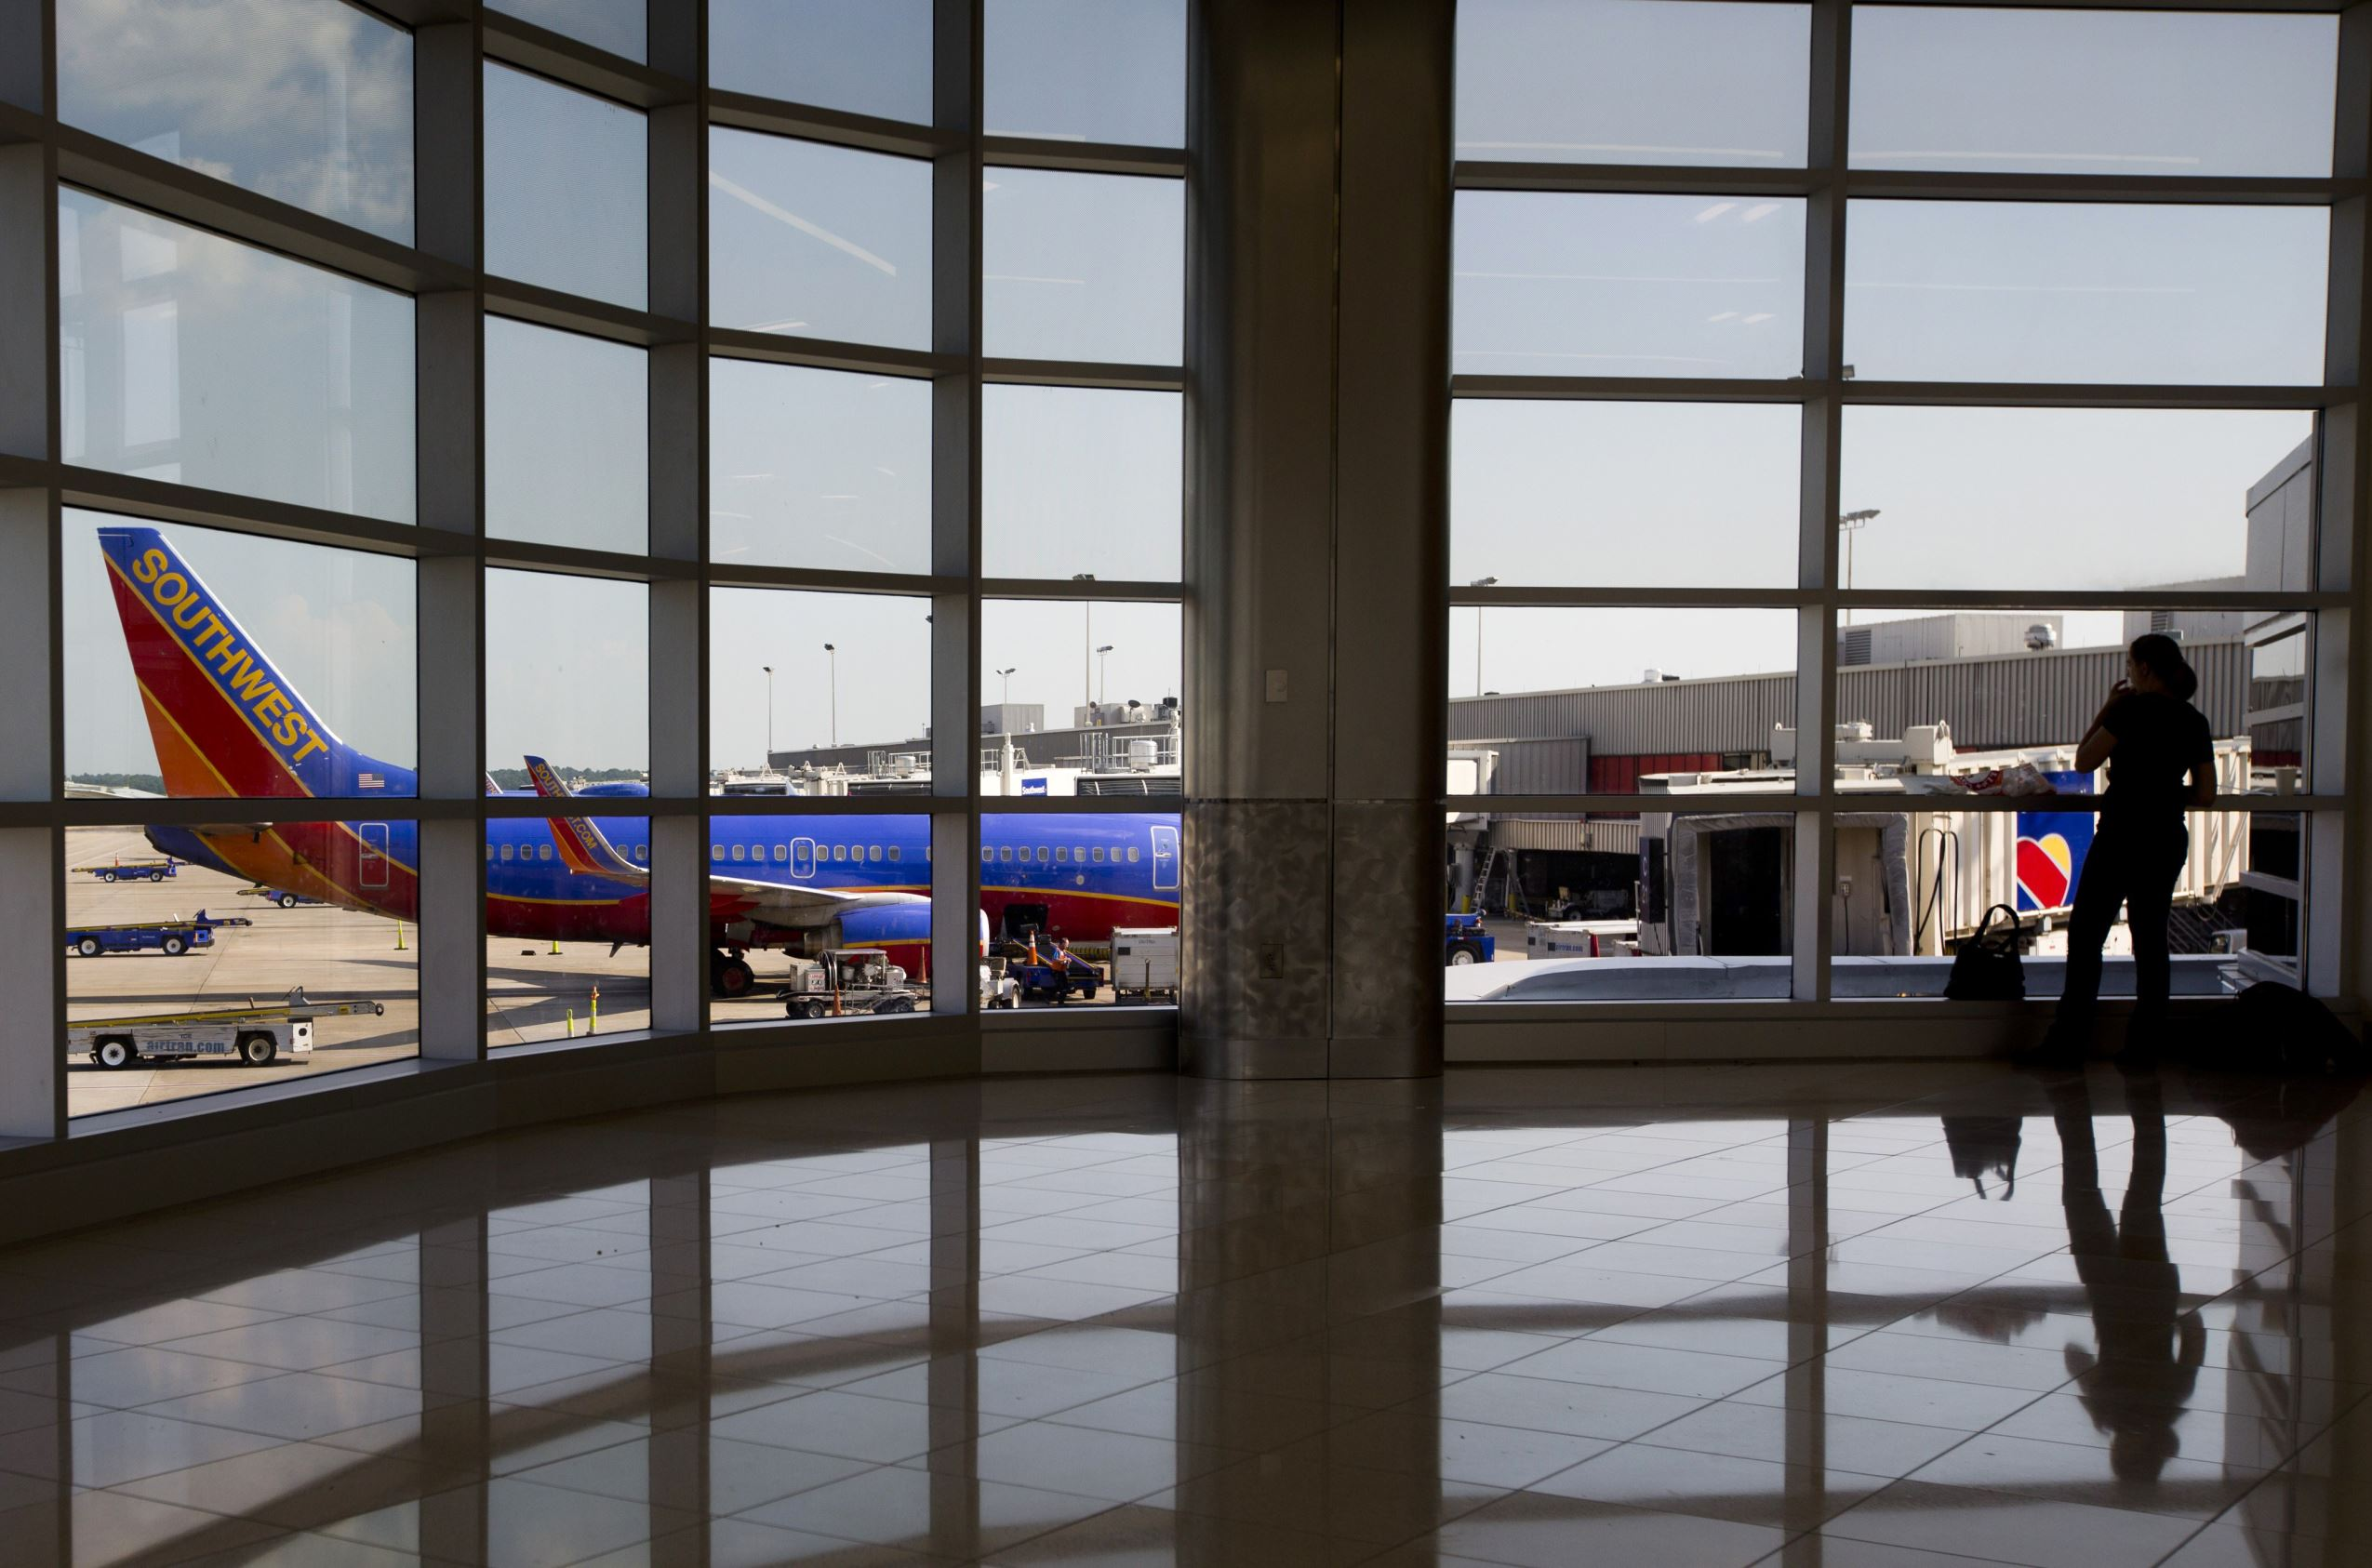 A passenger looks on near a Southwest Airlines plane at Hartsfield-Jackson Atlanta International Airport.